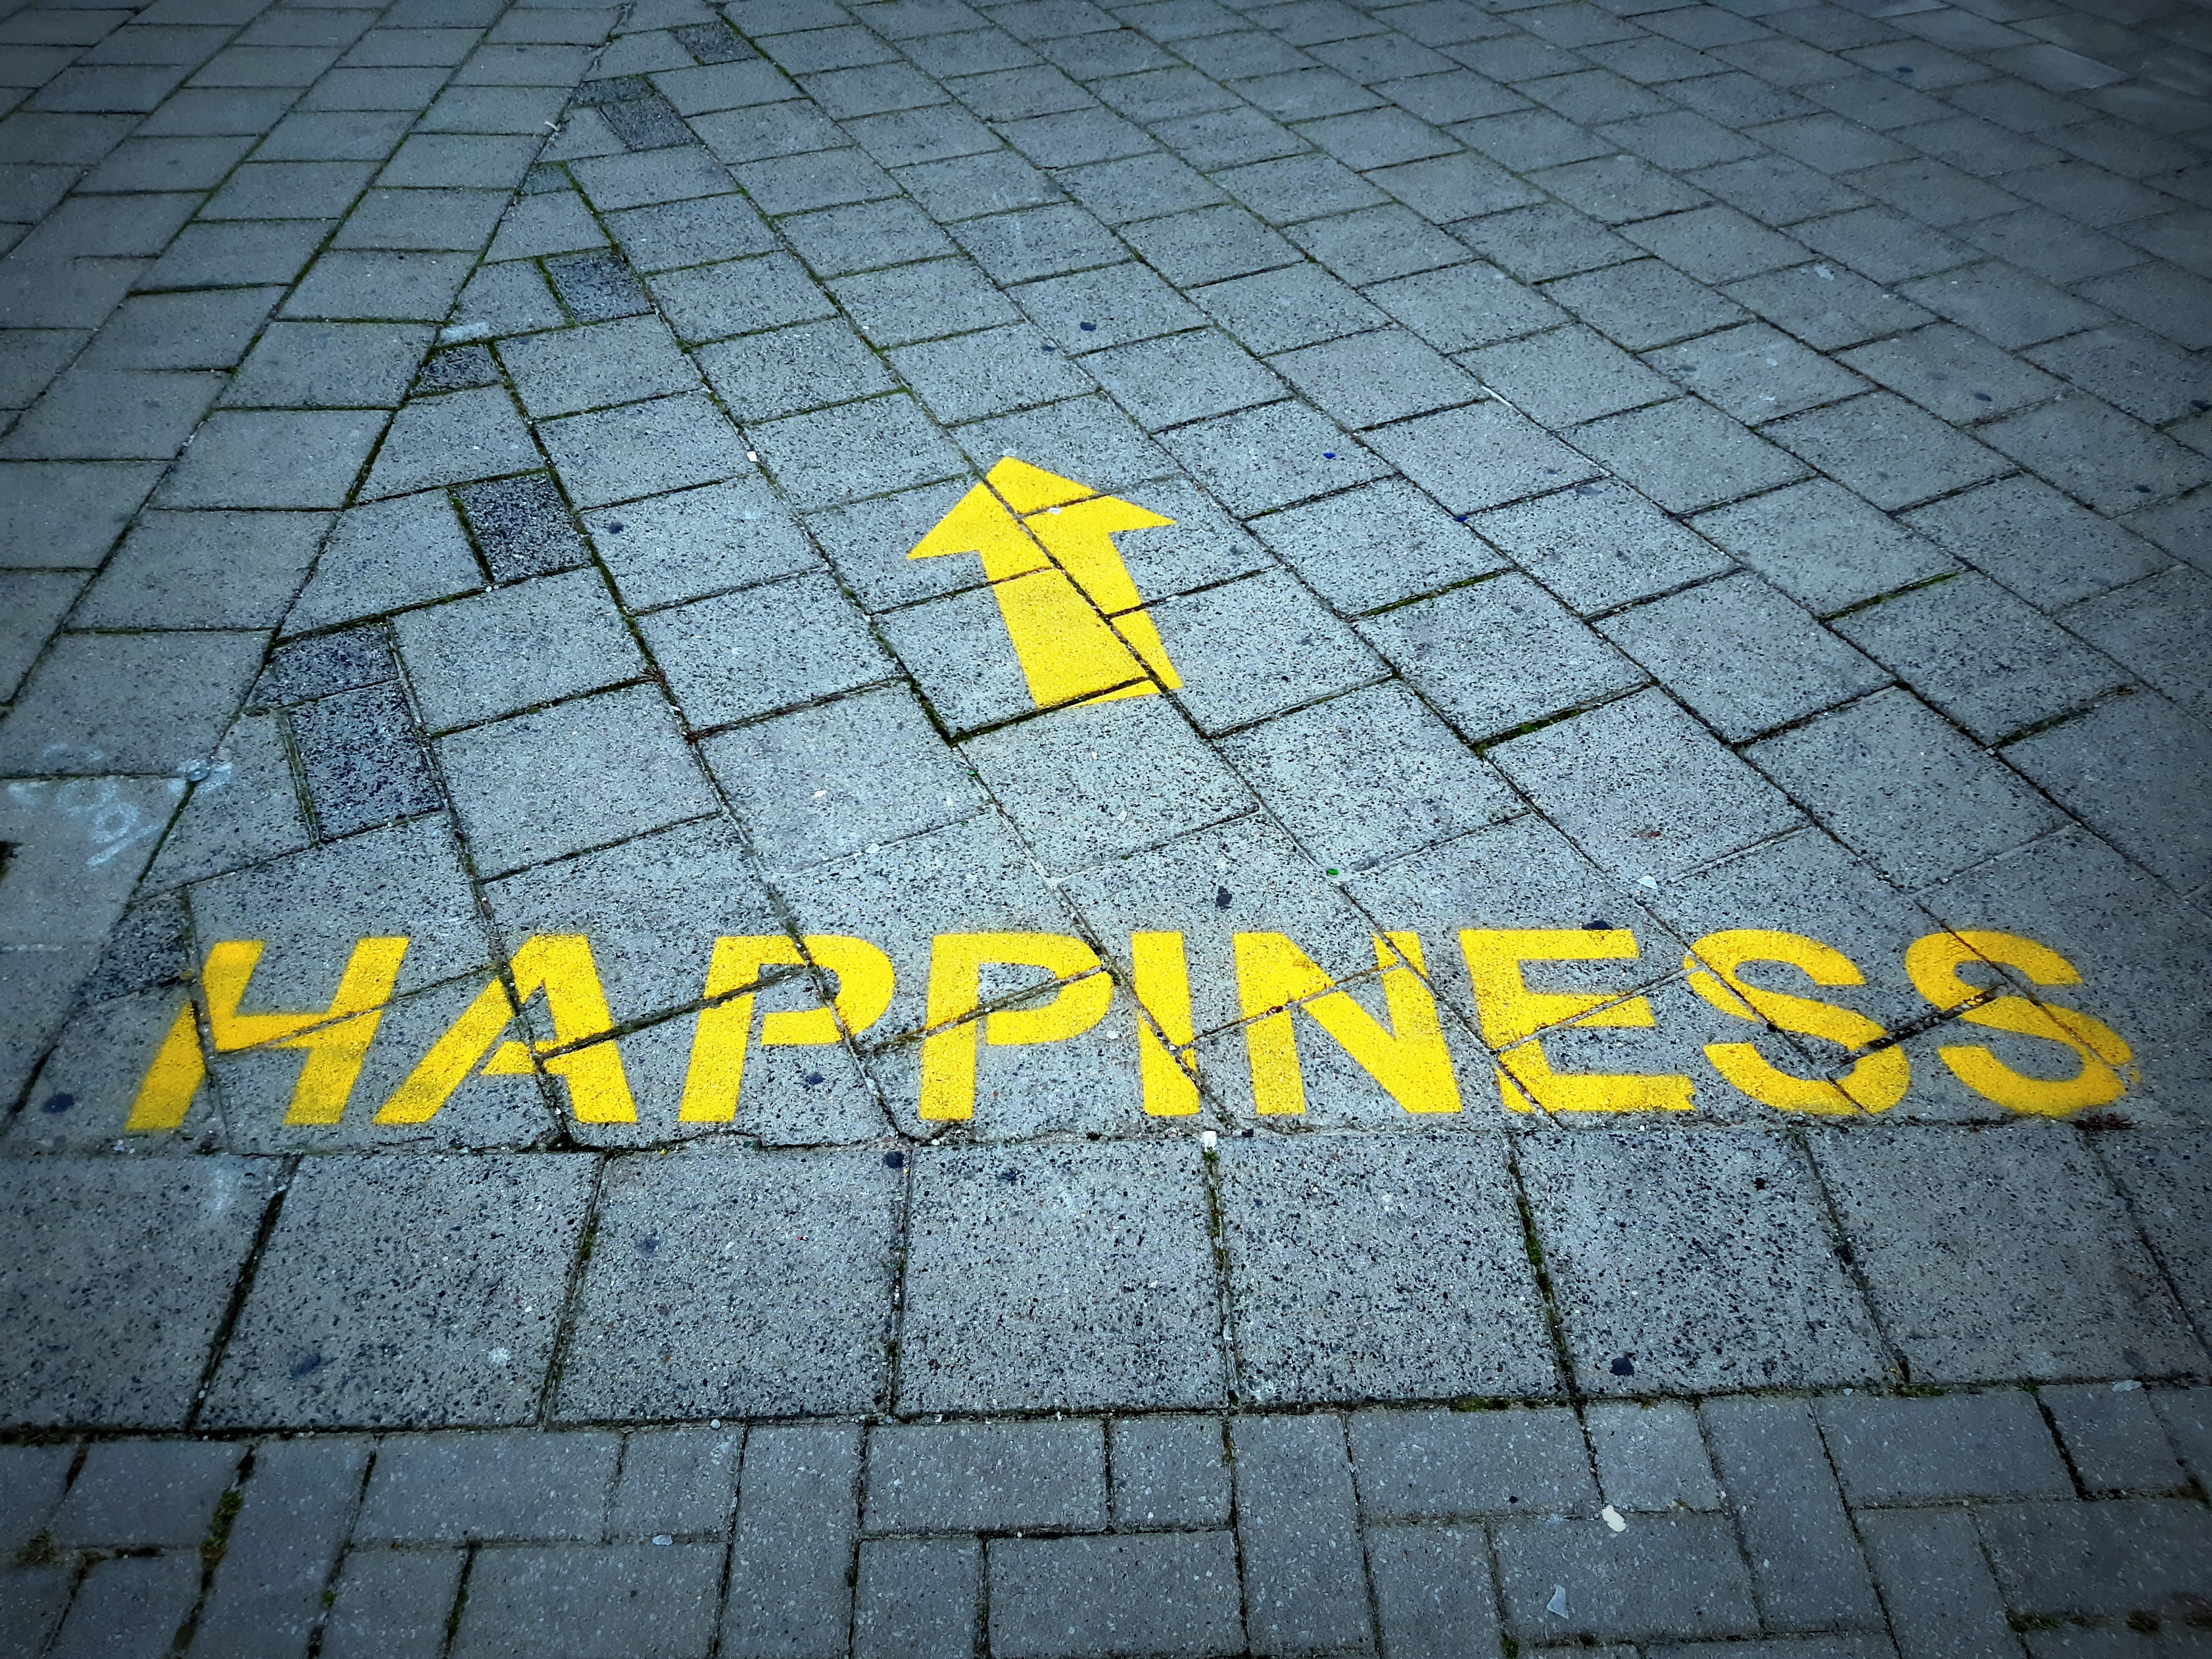 Finding Happiness and Meaning in the Time of COVID-19